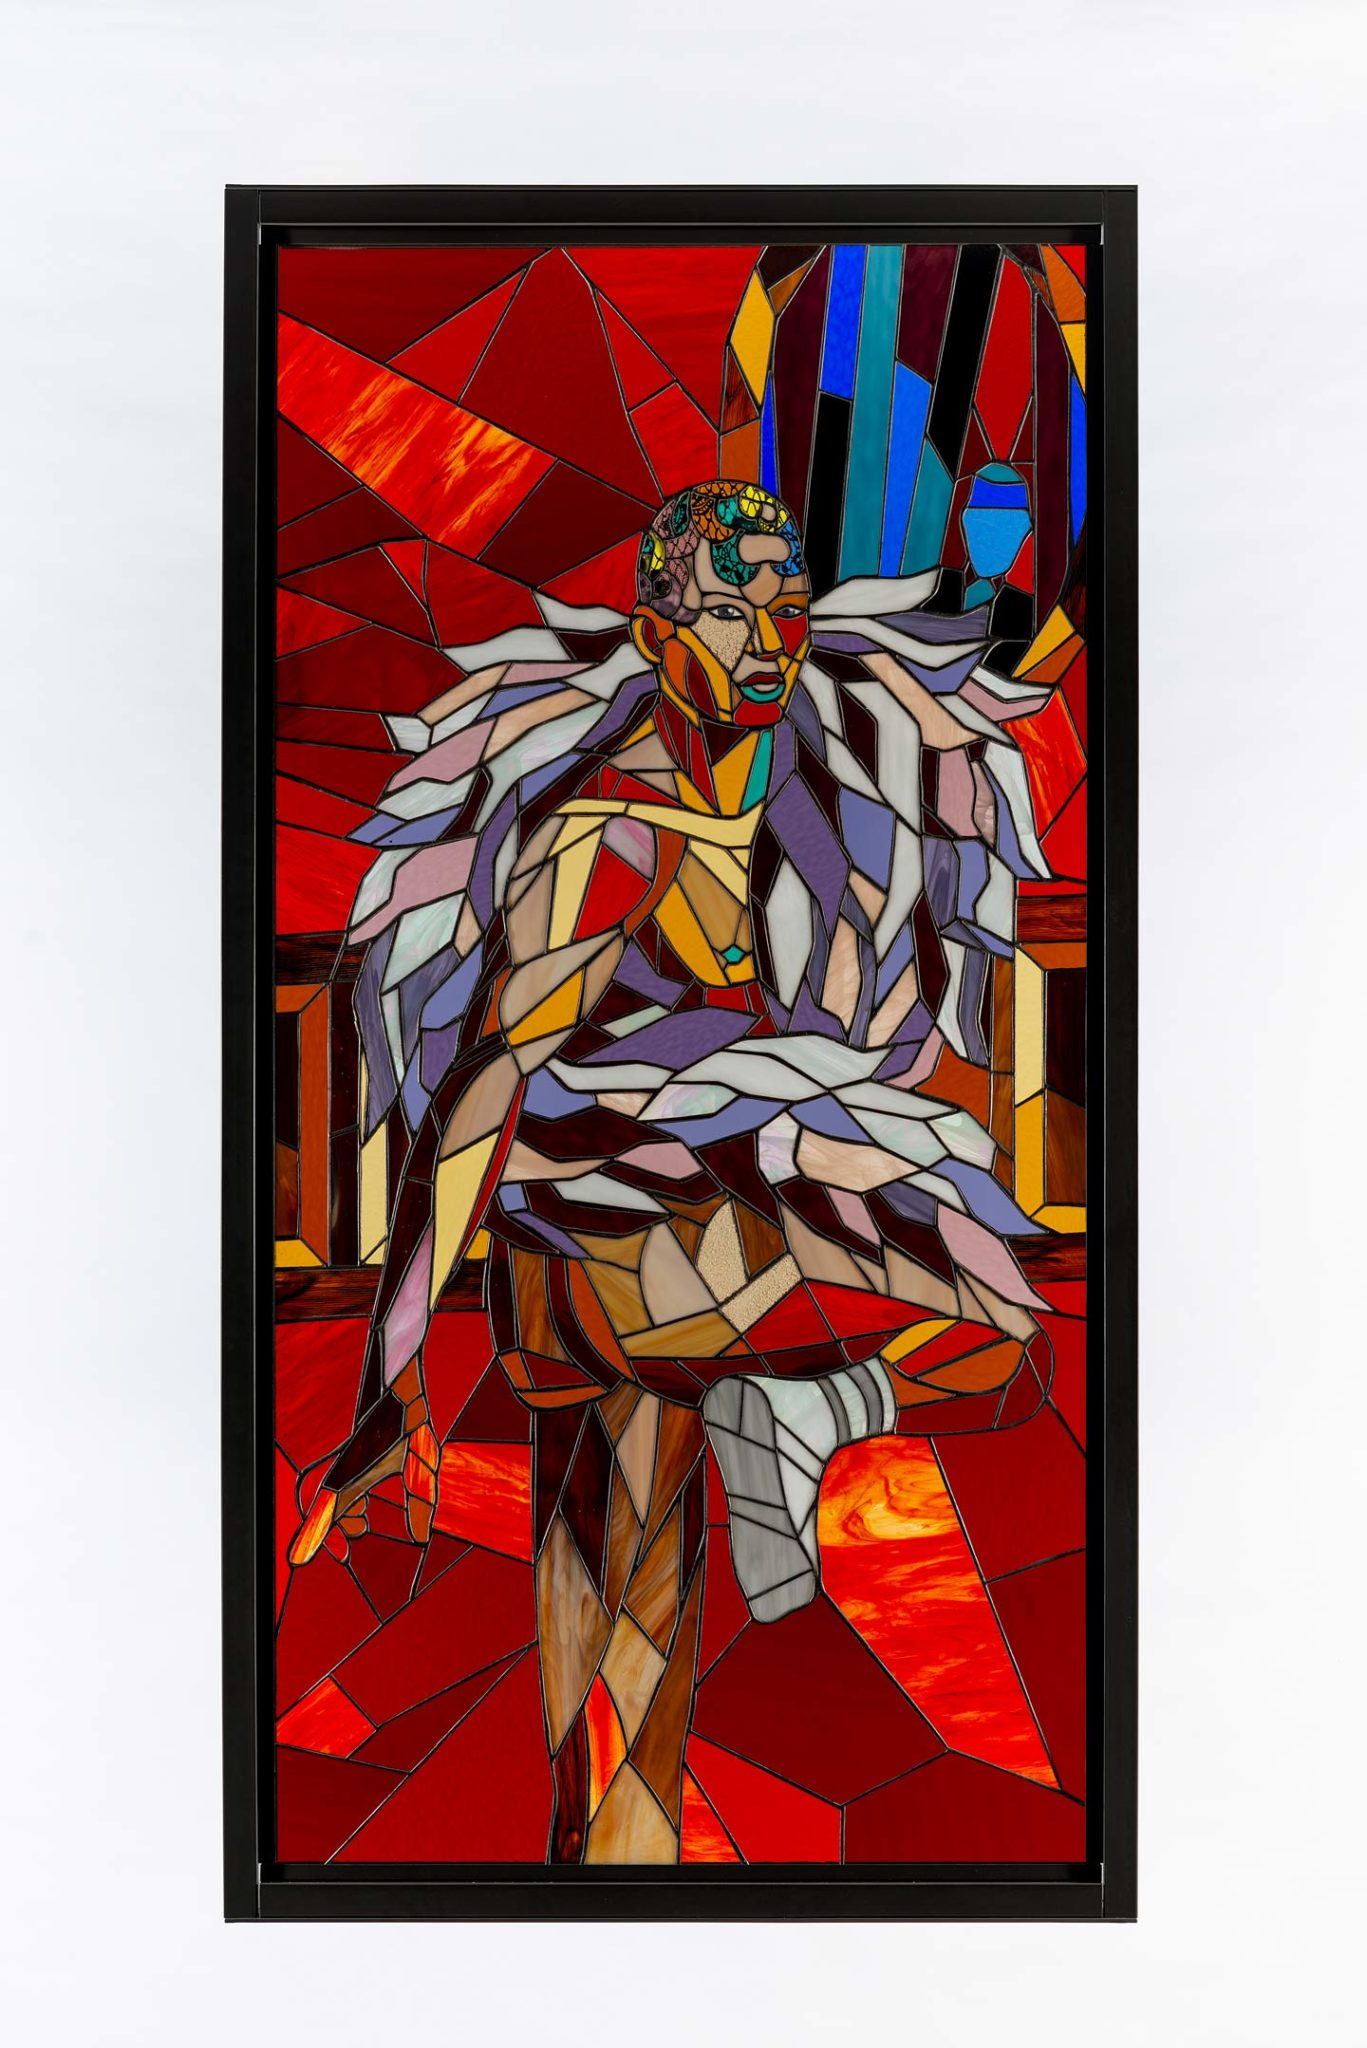 Athi-Patra Ruga, 'Contemplation', 2020, Stained glass, lead, and powder-coated steel via whaiftheworld.com